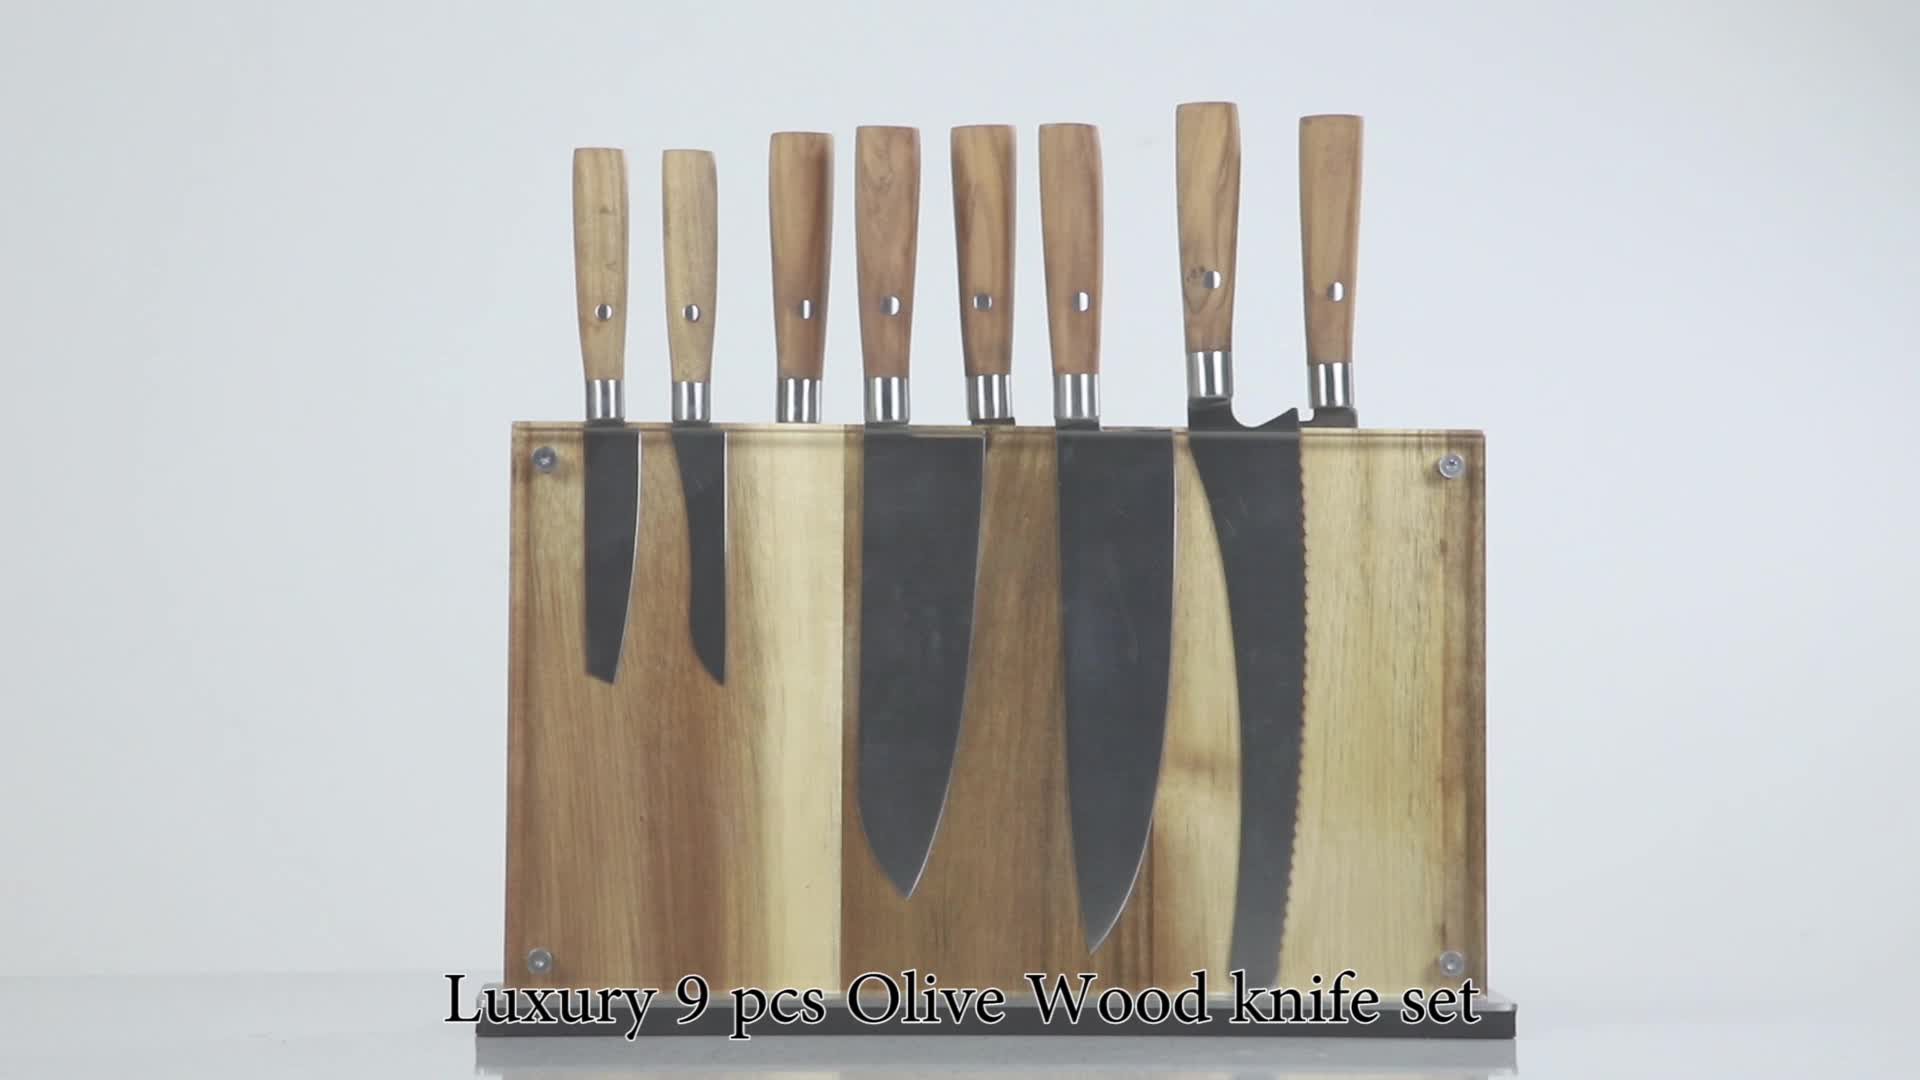 Professional Knives German 1.4116 High Carbon Stainless Steel 8 Piece Chef Kitchen Knife Set with Olive Wooden Handle